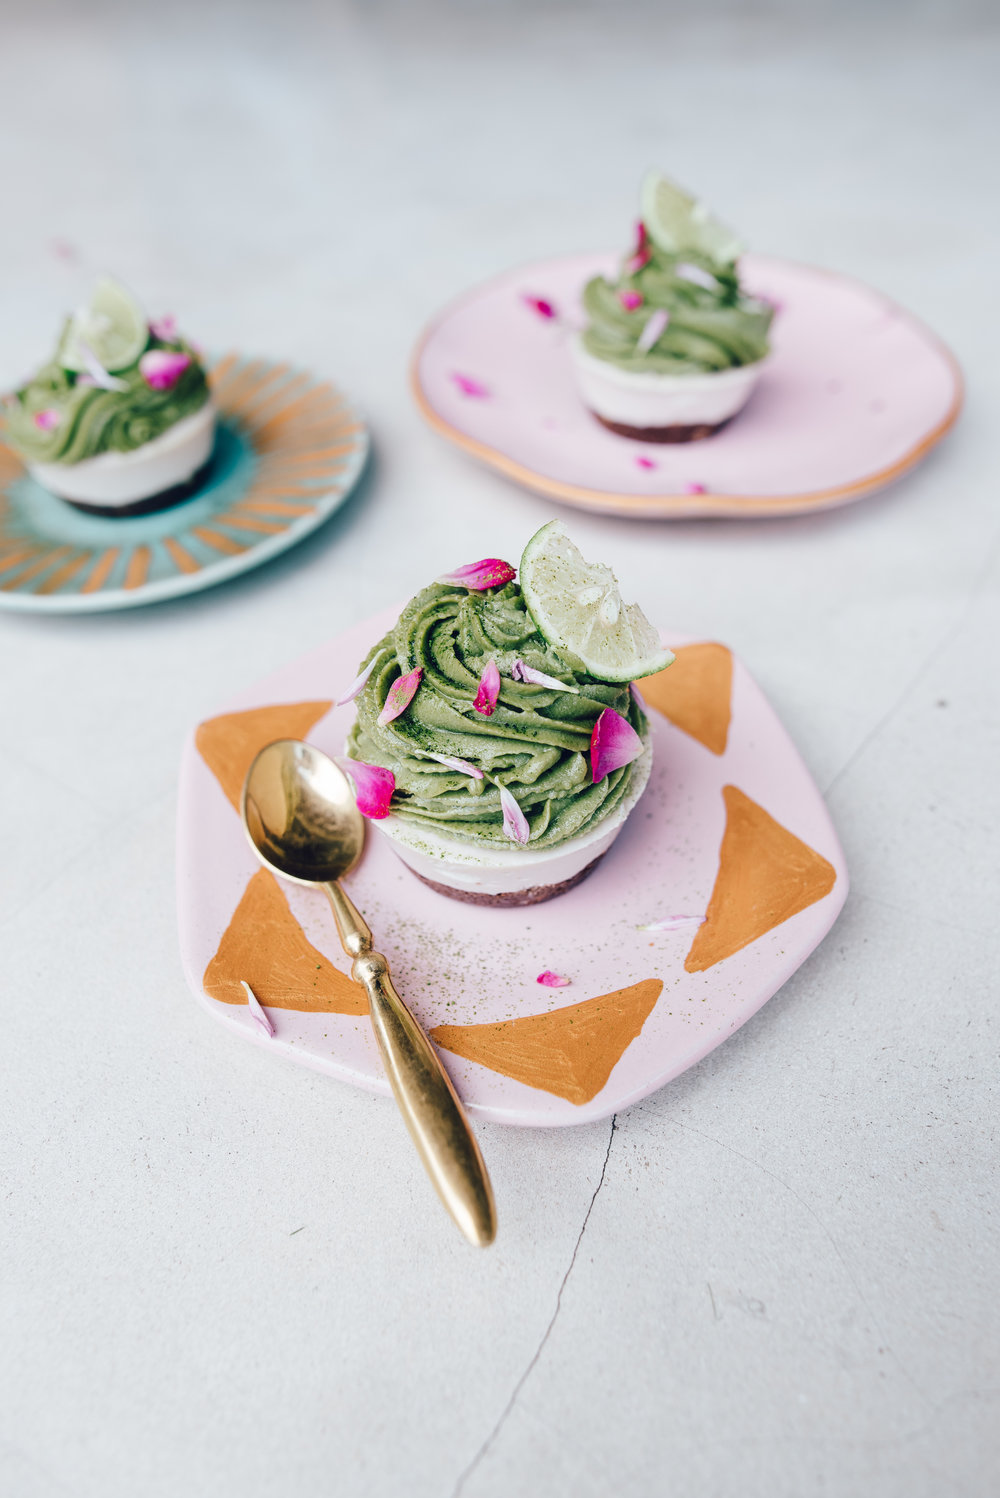 My Matcha Vanilla Swirl Raw Cupcakes, a featured dish at Peloton, designed and created by me.